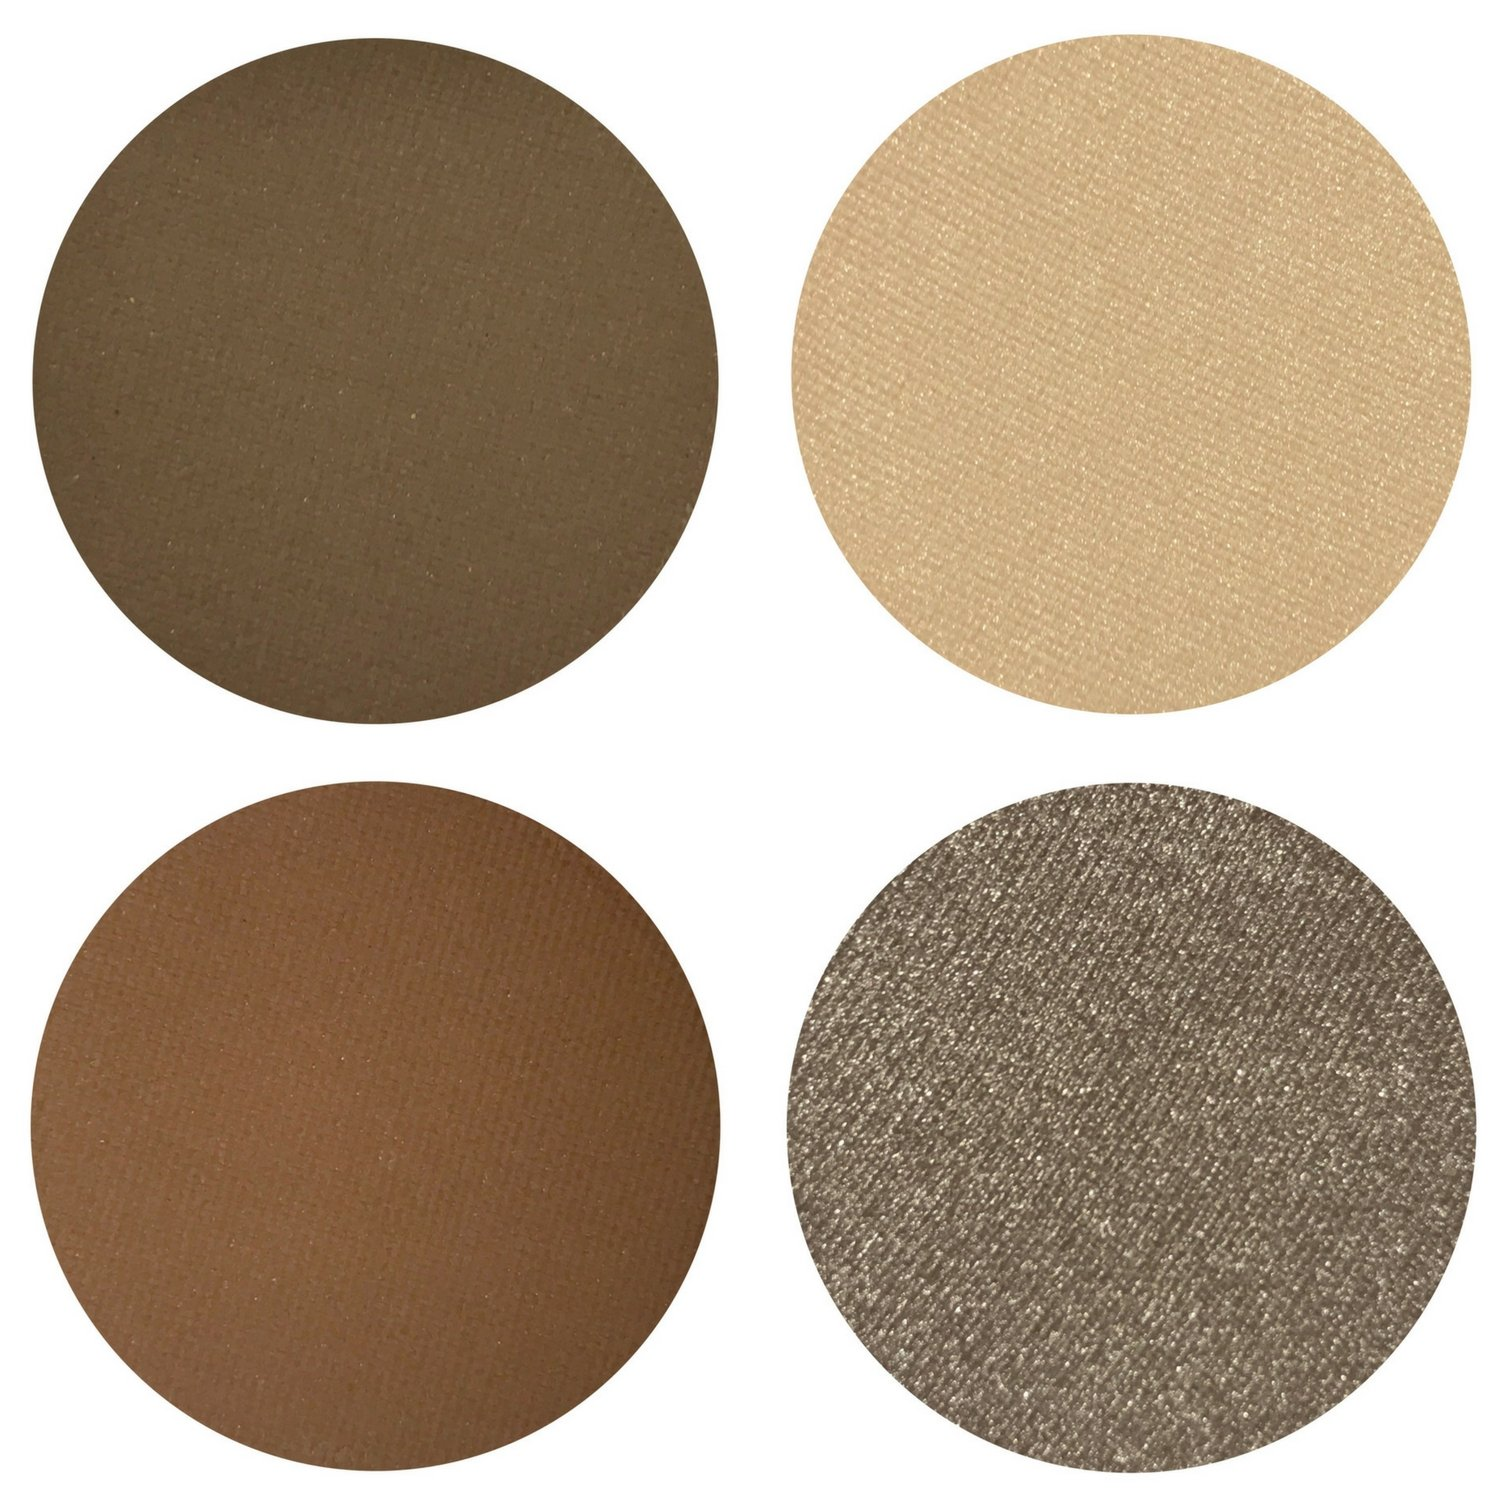 Coffee n Cream Eyeshadow Quad Palette - 4 Highly Pigmented Single Powder Eye Shadow Pans, Magnetic Refill 26mm, Professional Quality Makeup, Paraben and Gluten Free, Cruelty Free Cosmetics